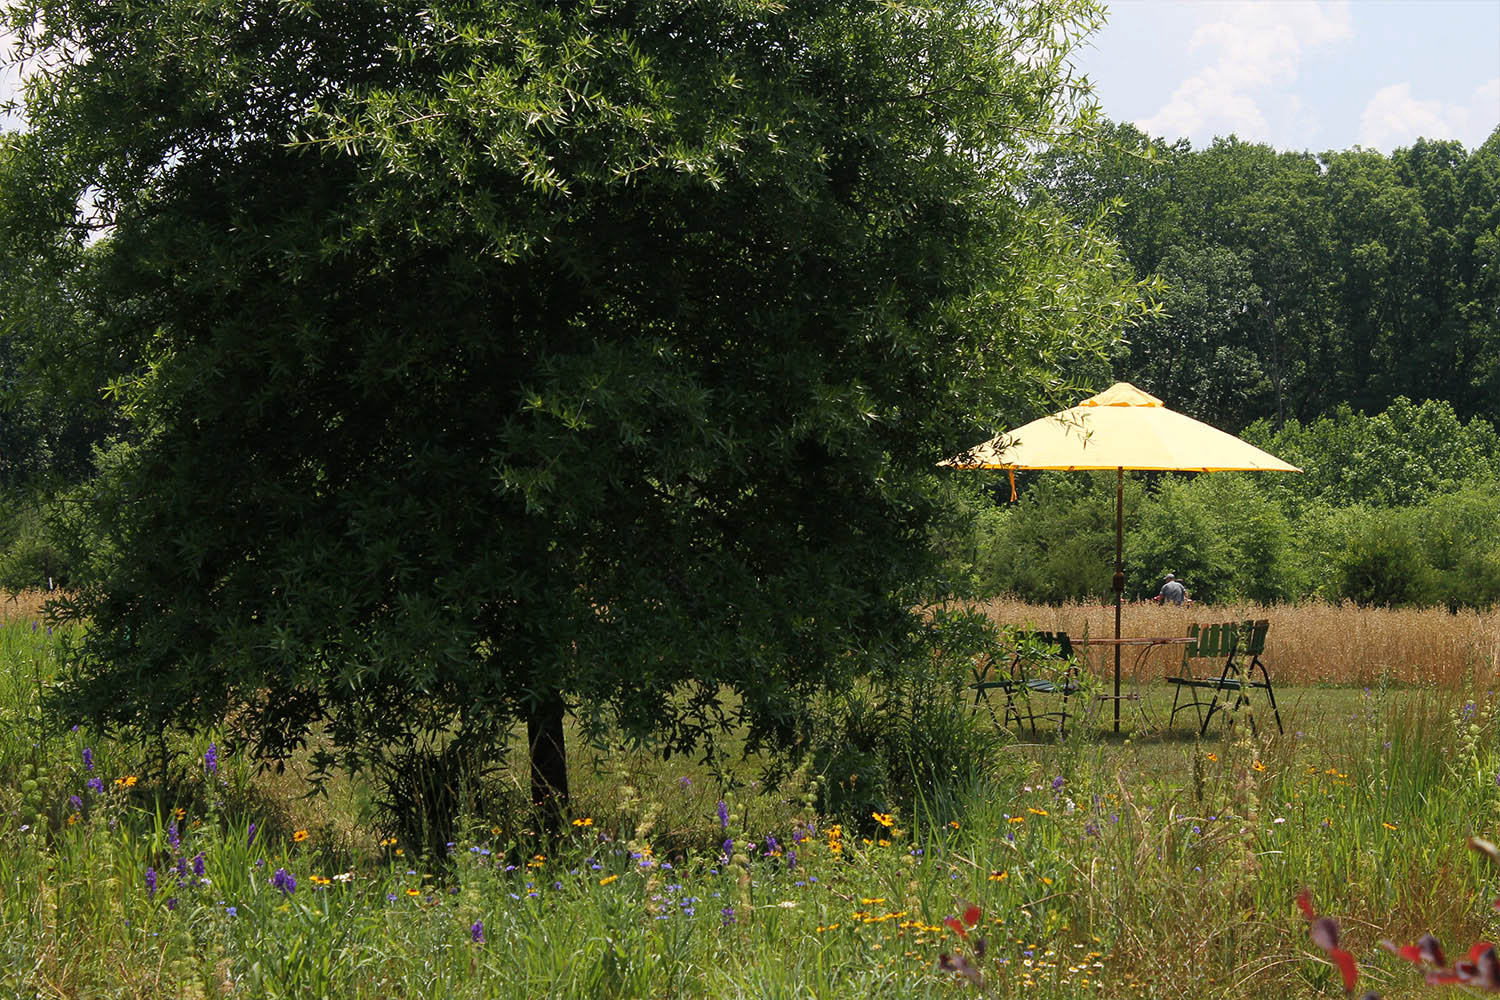 wild-flowers-under-a-tree-by-a-yellow-umbrella-table-chairs-IMG_1427.jpg